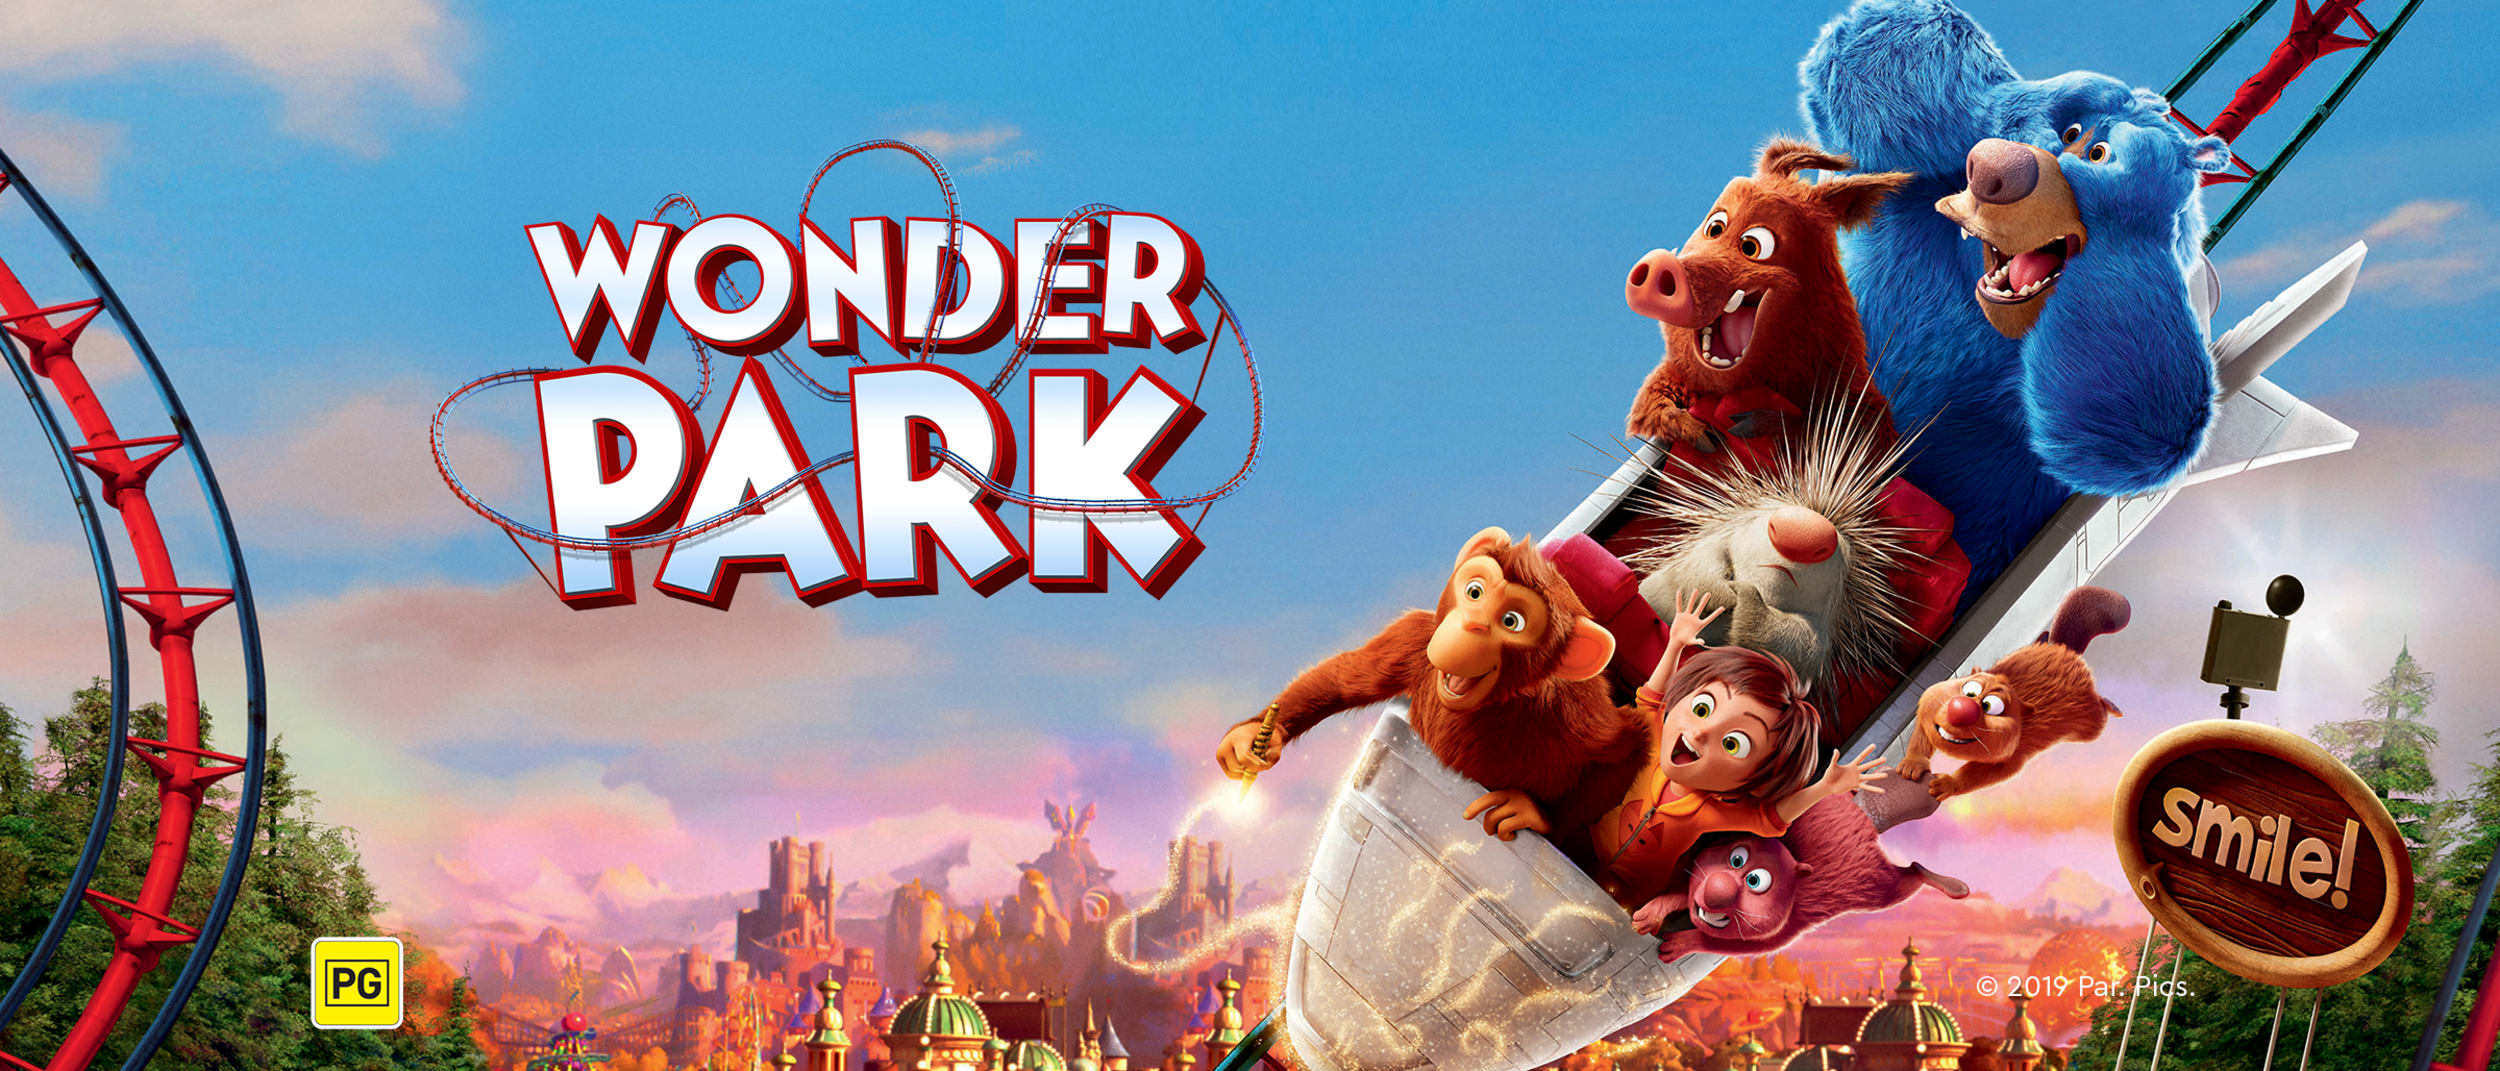 Meet the beavers of Wonder Park, in cinemas now